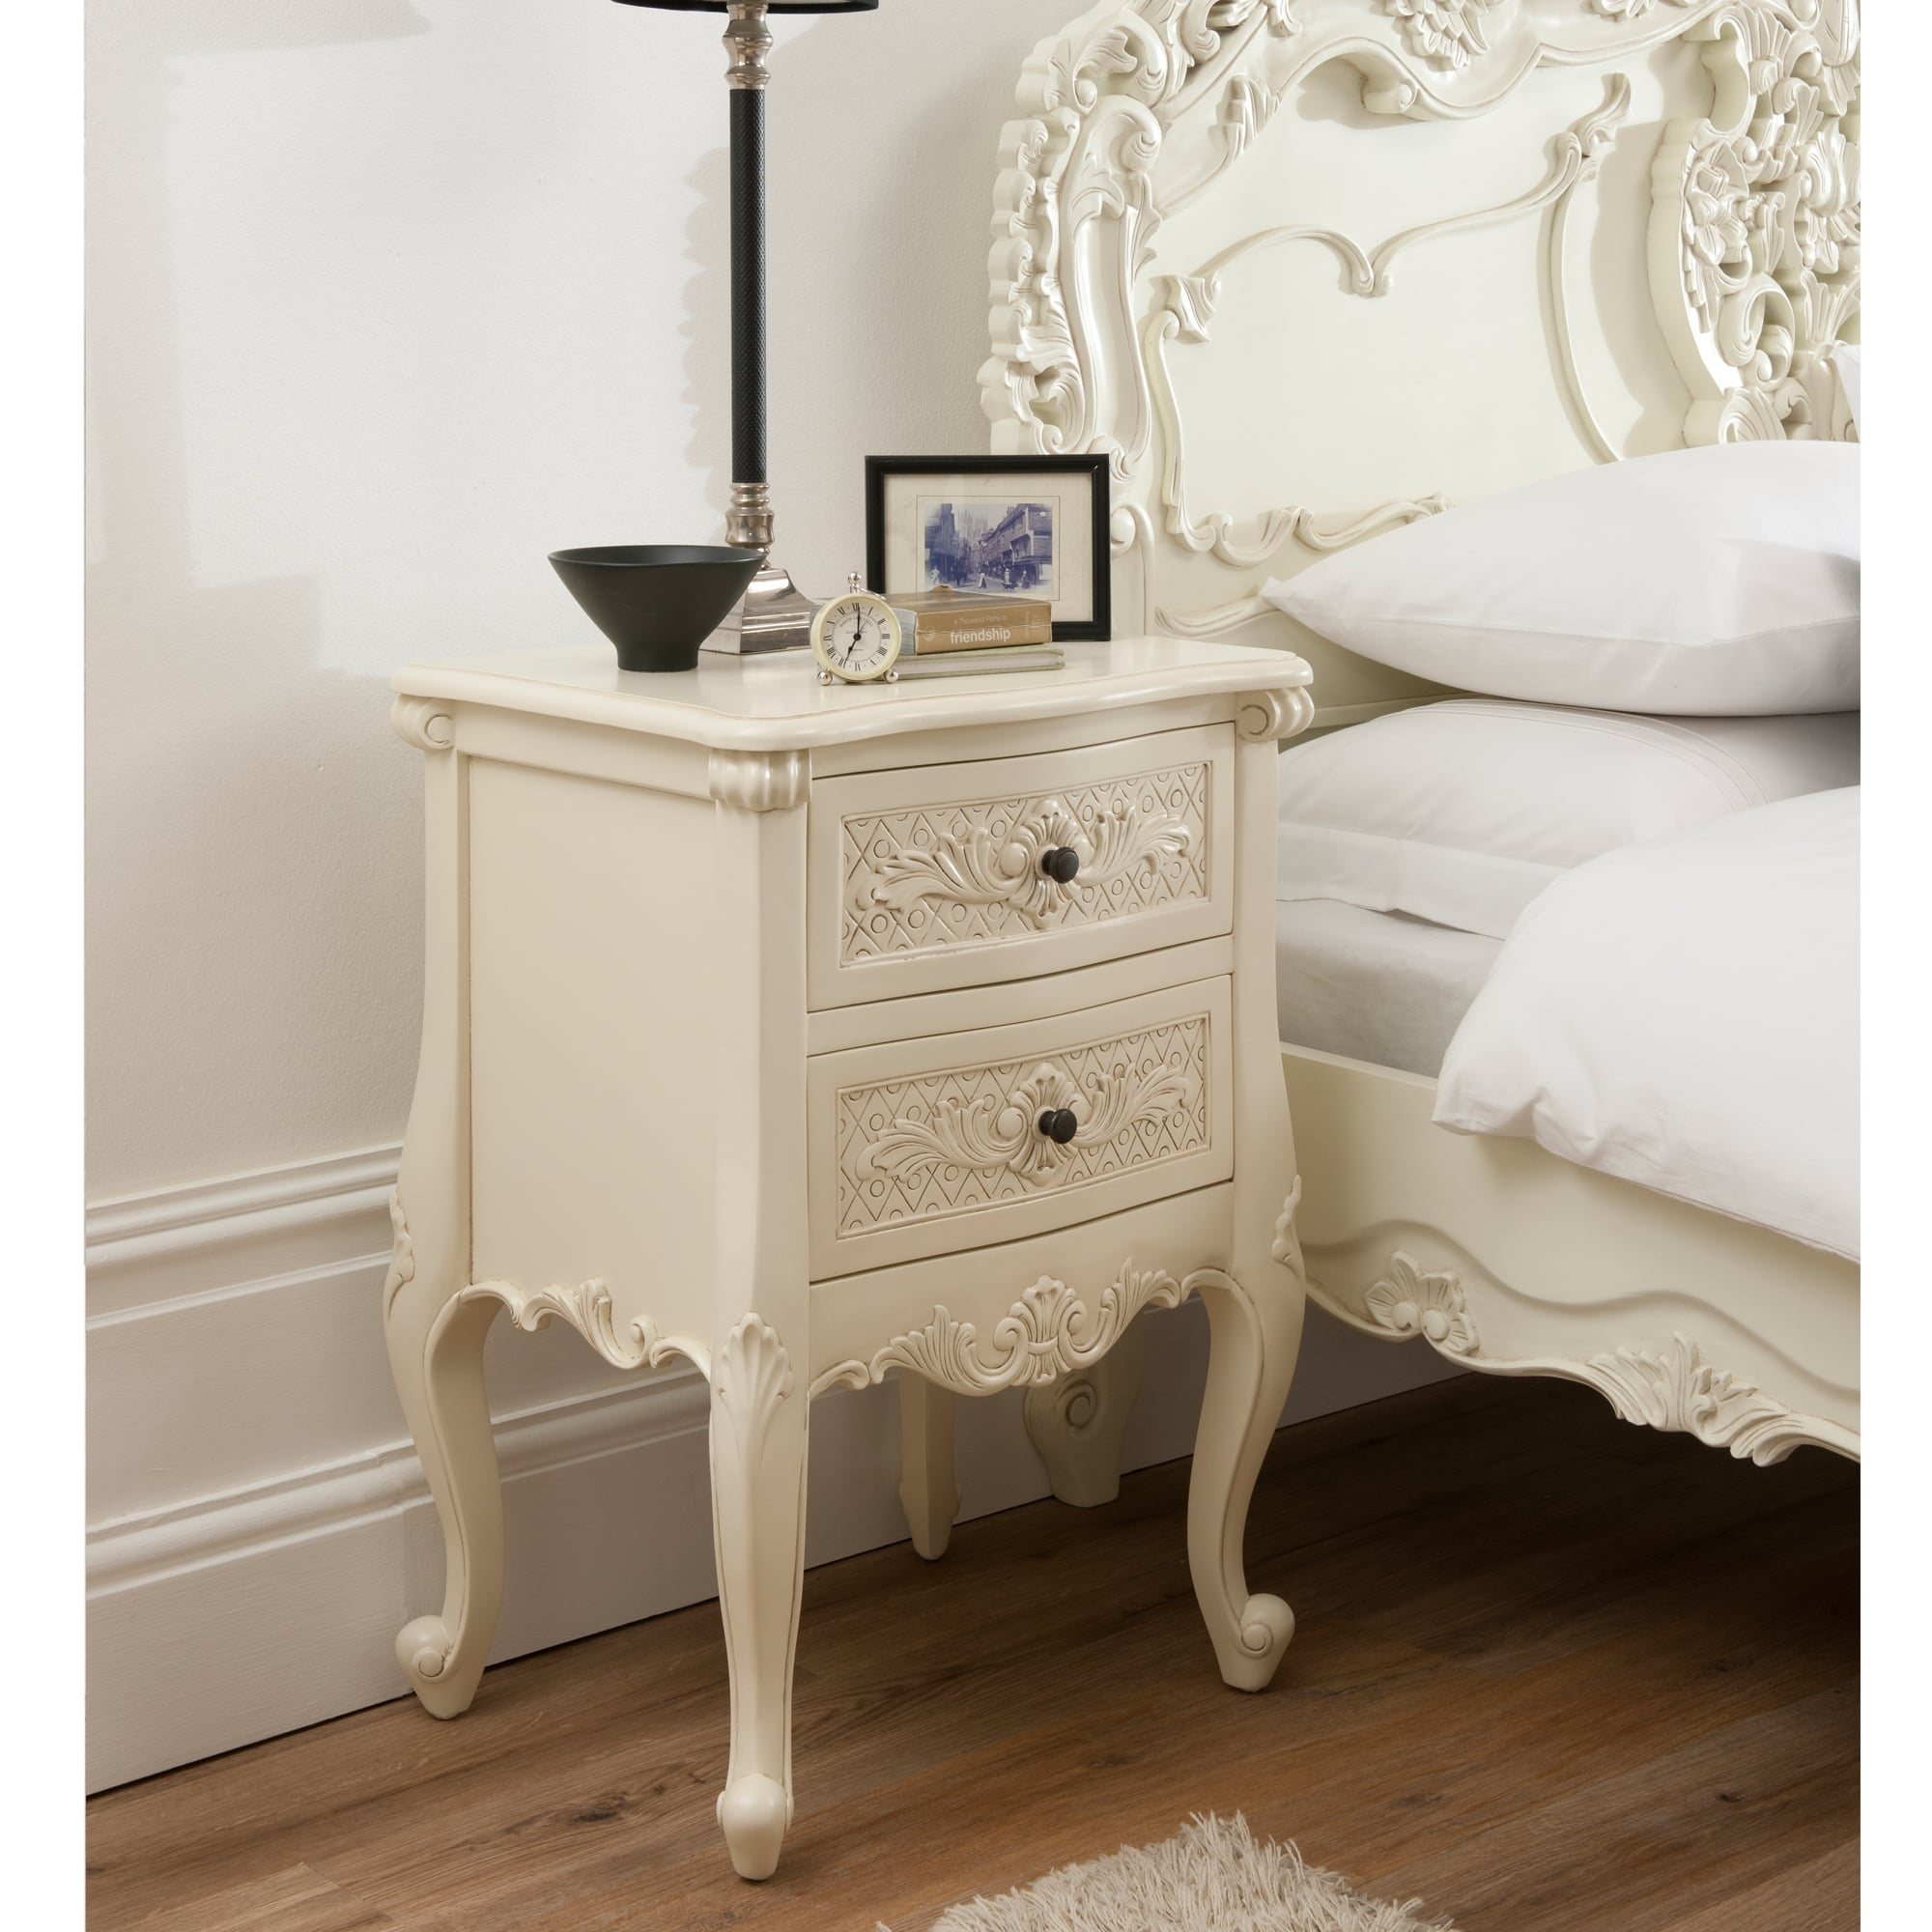 bordeaux ivory 2 drawer antique french bedside available now. Black Bedroom Furniture Sets. Home Design Ideas